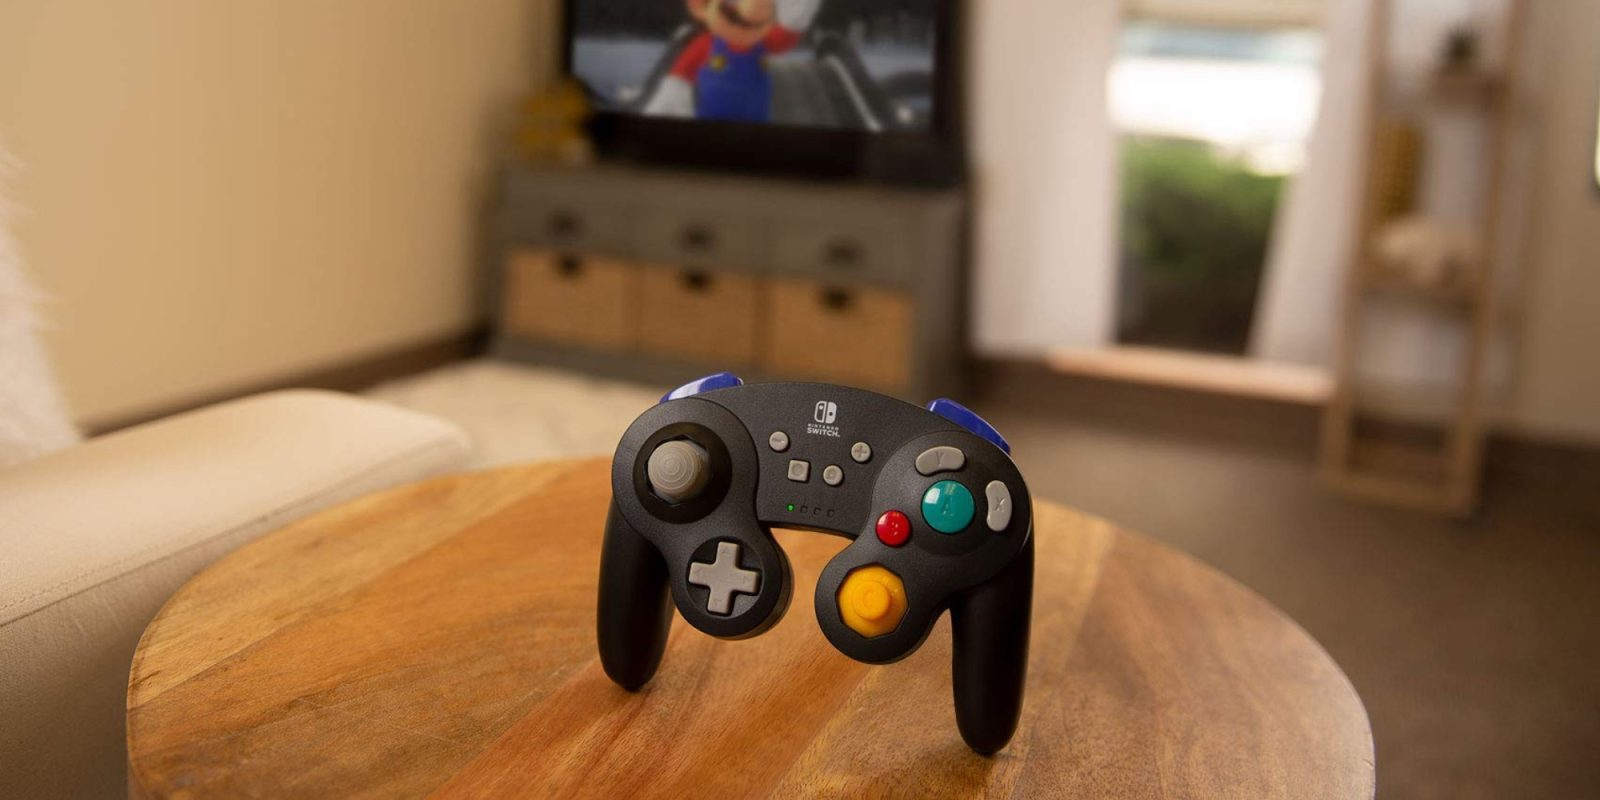 PowerA's $37 Wireless Controller adds GameCube vibes to your Switch